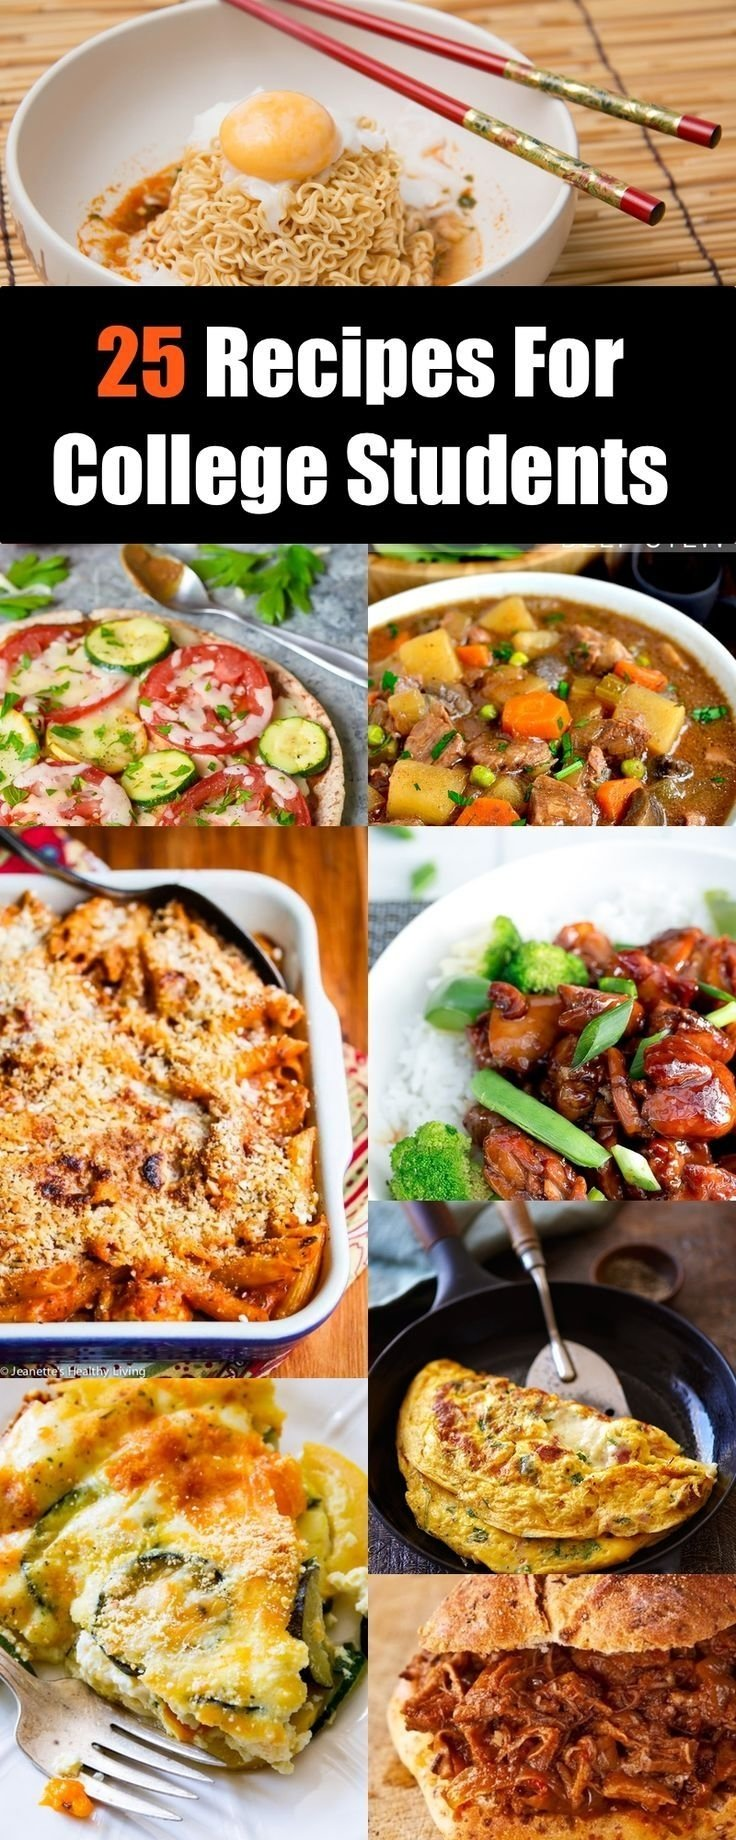 10 Fantastic Cheap And Healthy Dinner Ideas 2717 best college recipes images on pinterest kitchens rezepte 2020